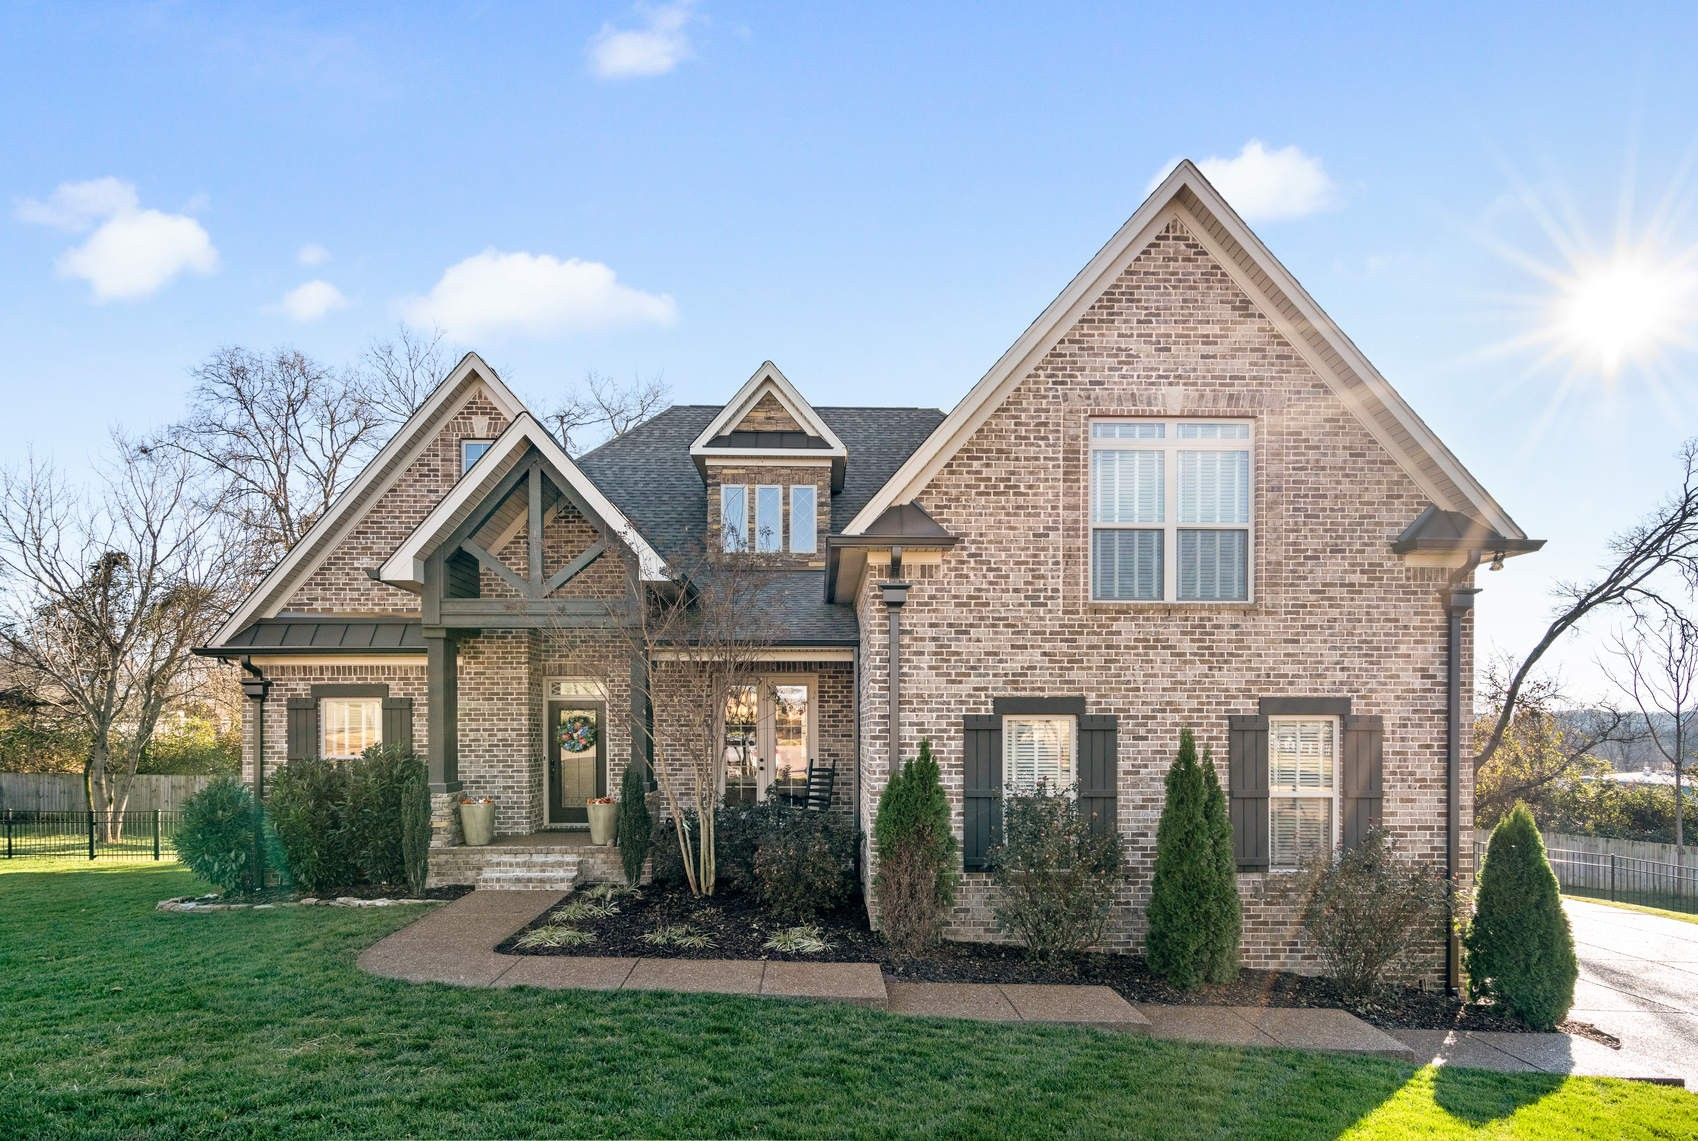 705 Stokley Gln, Old Hickory, TN 37138 - Old Hickory, TN real estate listing